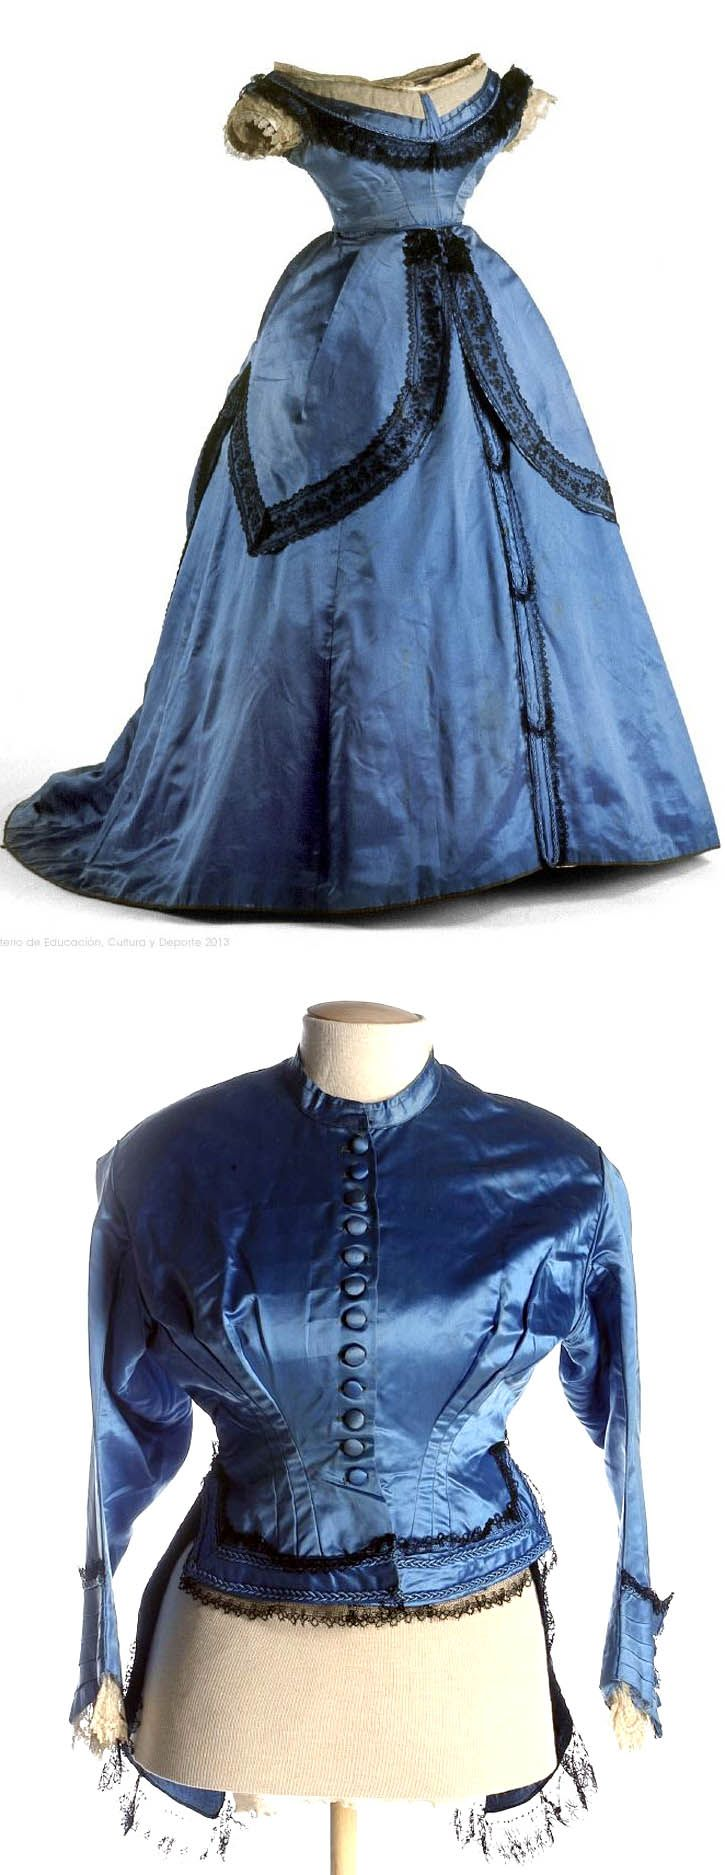 Dress, ca. 1860-65. Silk satin, batavia twill, and taffeta; mechanical lace, and double braiding. Four pieces: jacket or day bodice, evening bodice, skirt, and peplum or over-skirt. Museo del Traje